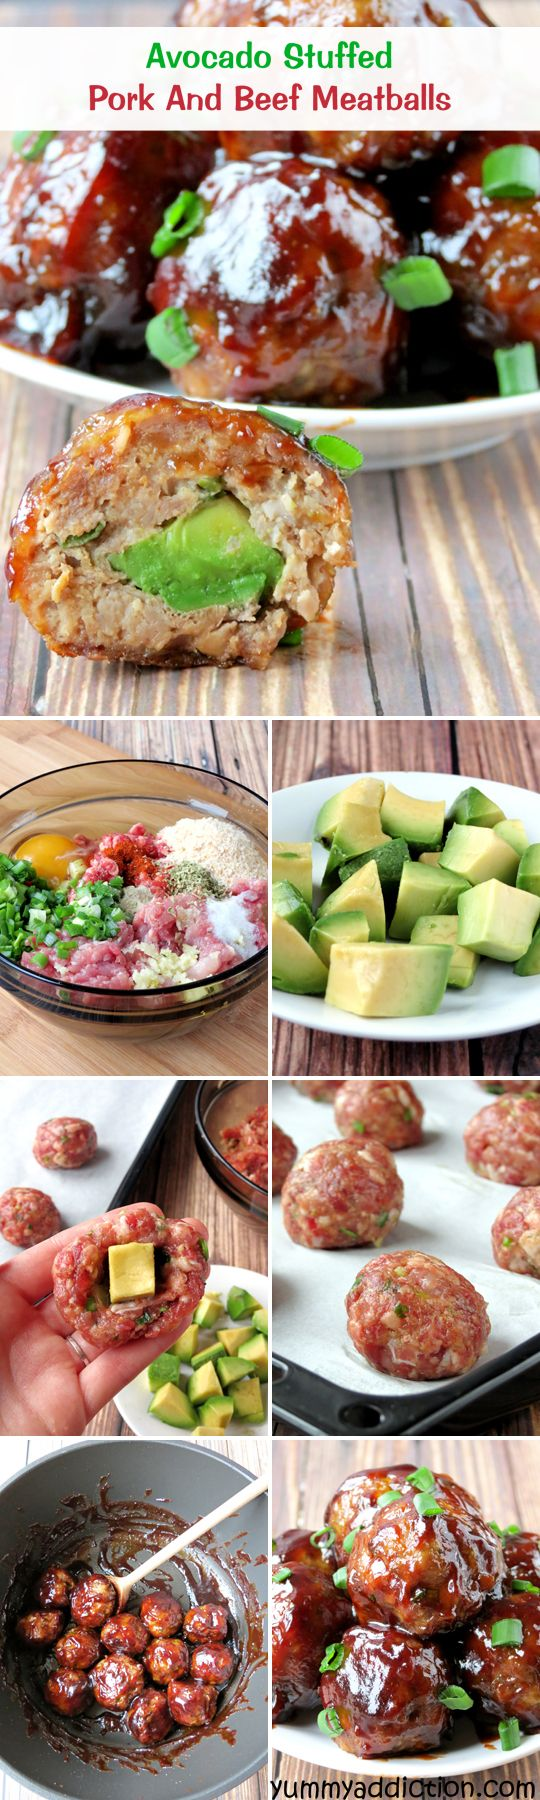 I LOVE avocado! I can't wait to try and make all of this Avocado Stuffed Pork And Beef Meatballs | http://YummyAddiction.com